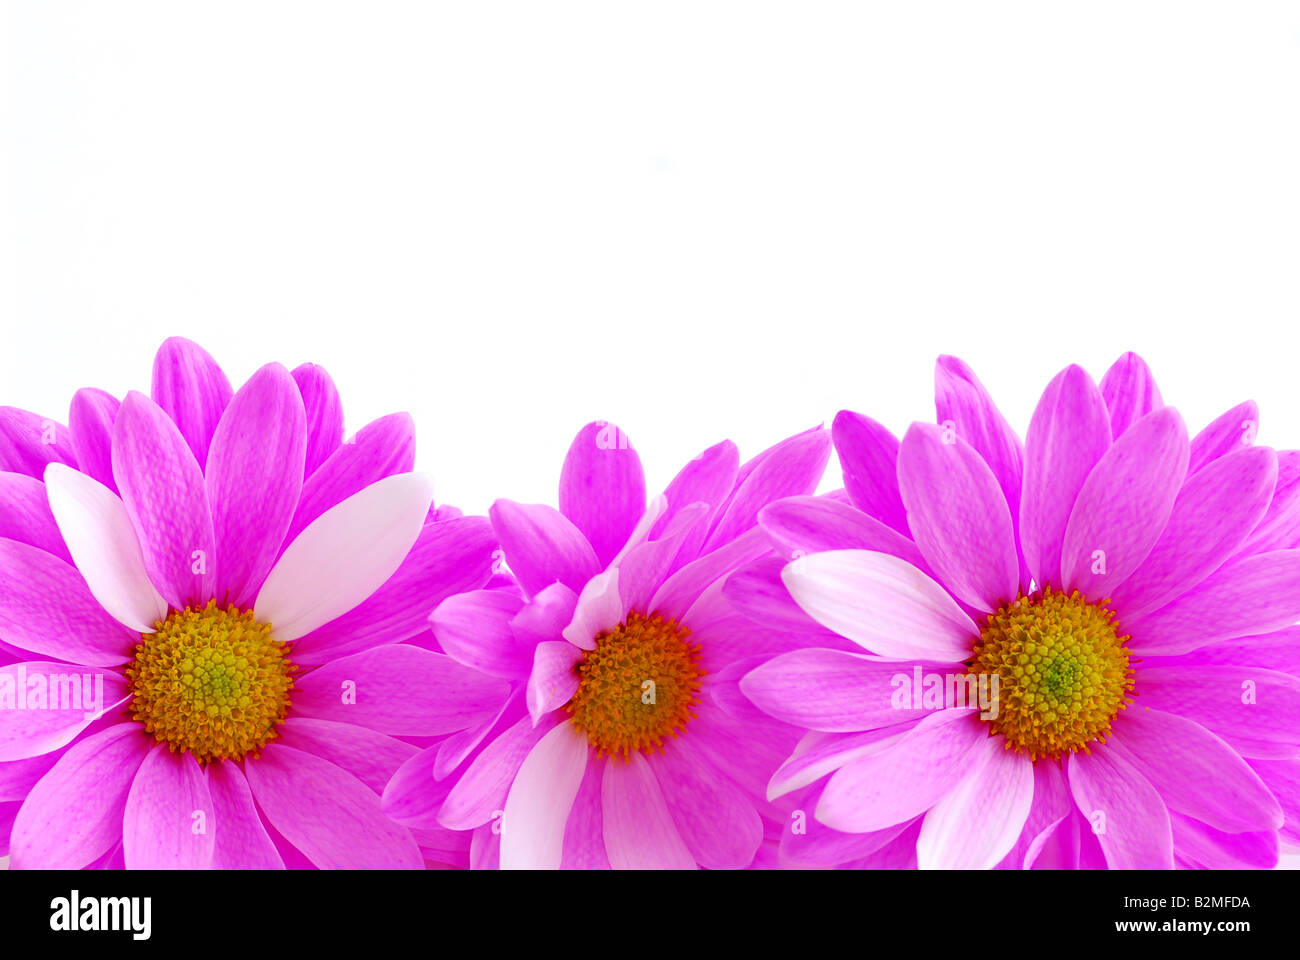 Border Of Pink Flowers Close Up On White Background Stock Photo